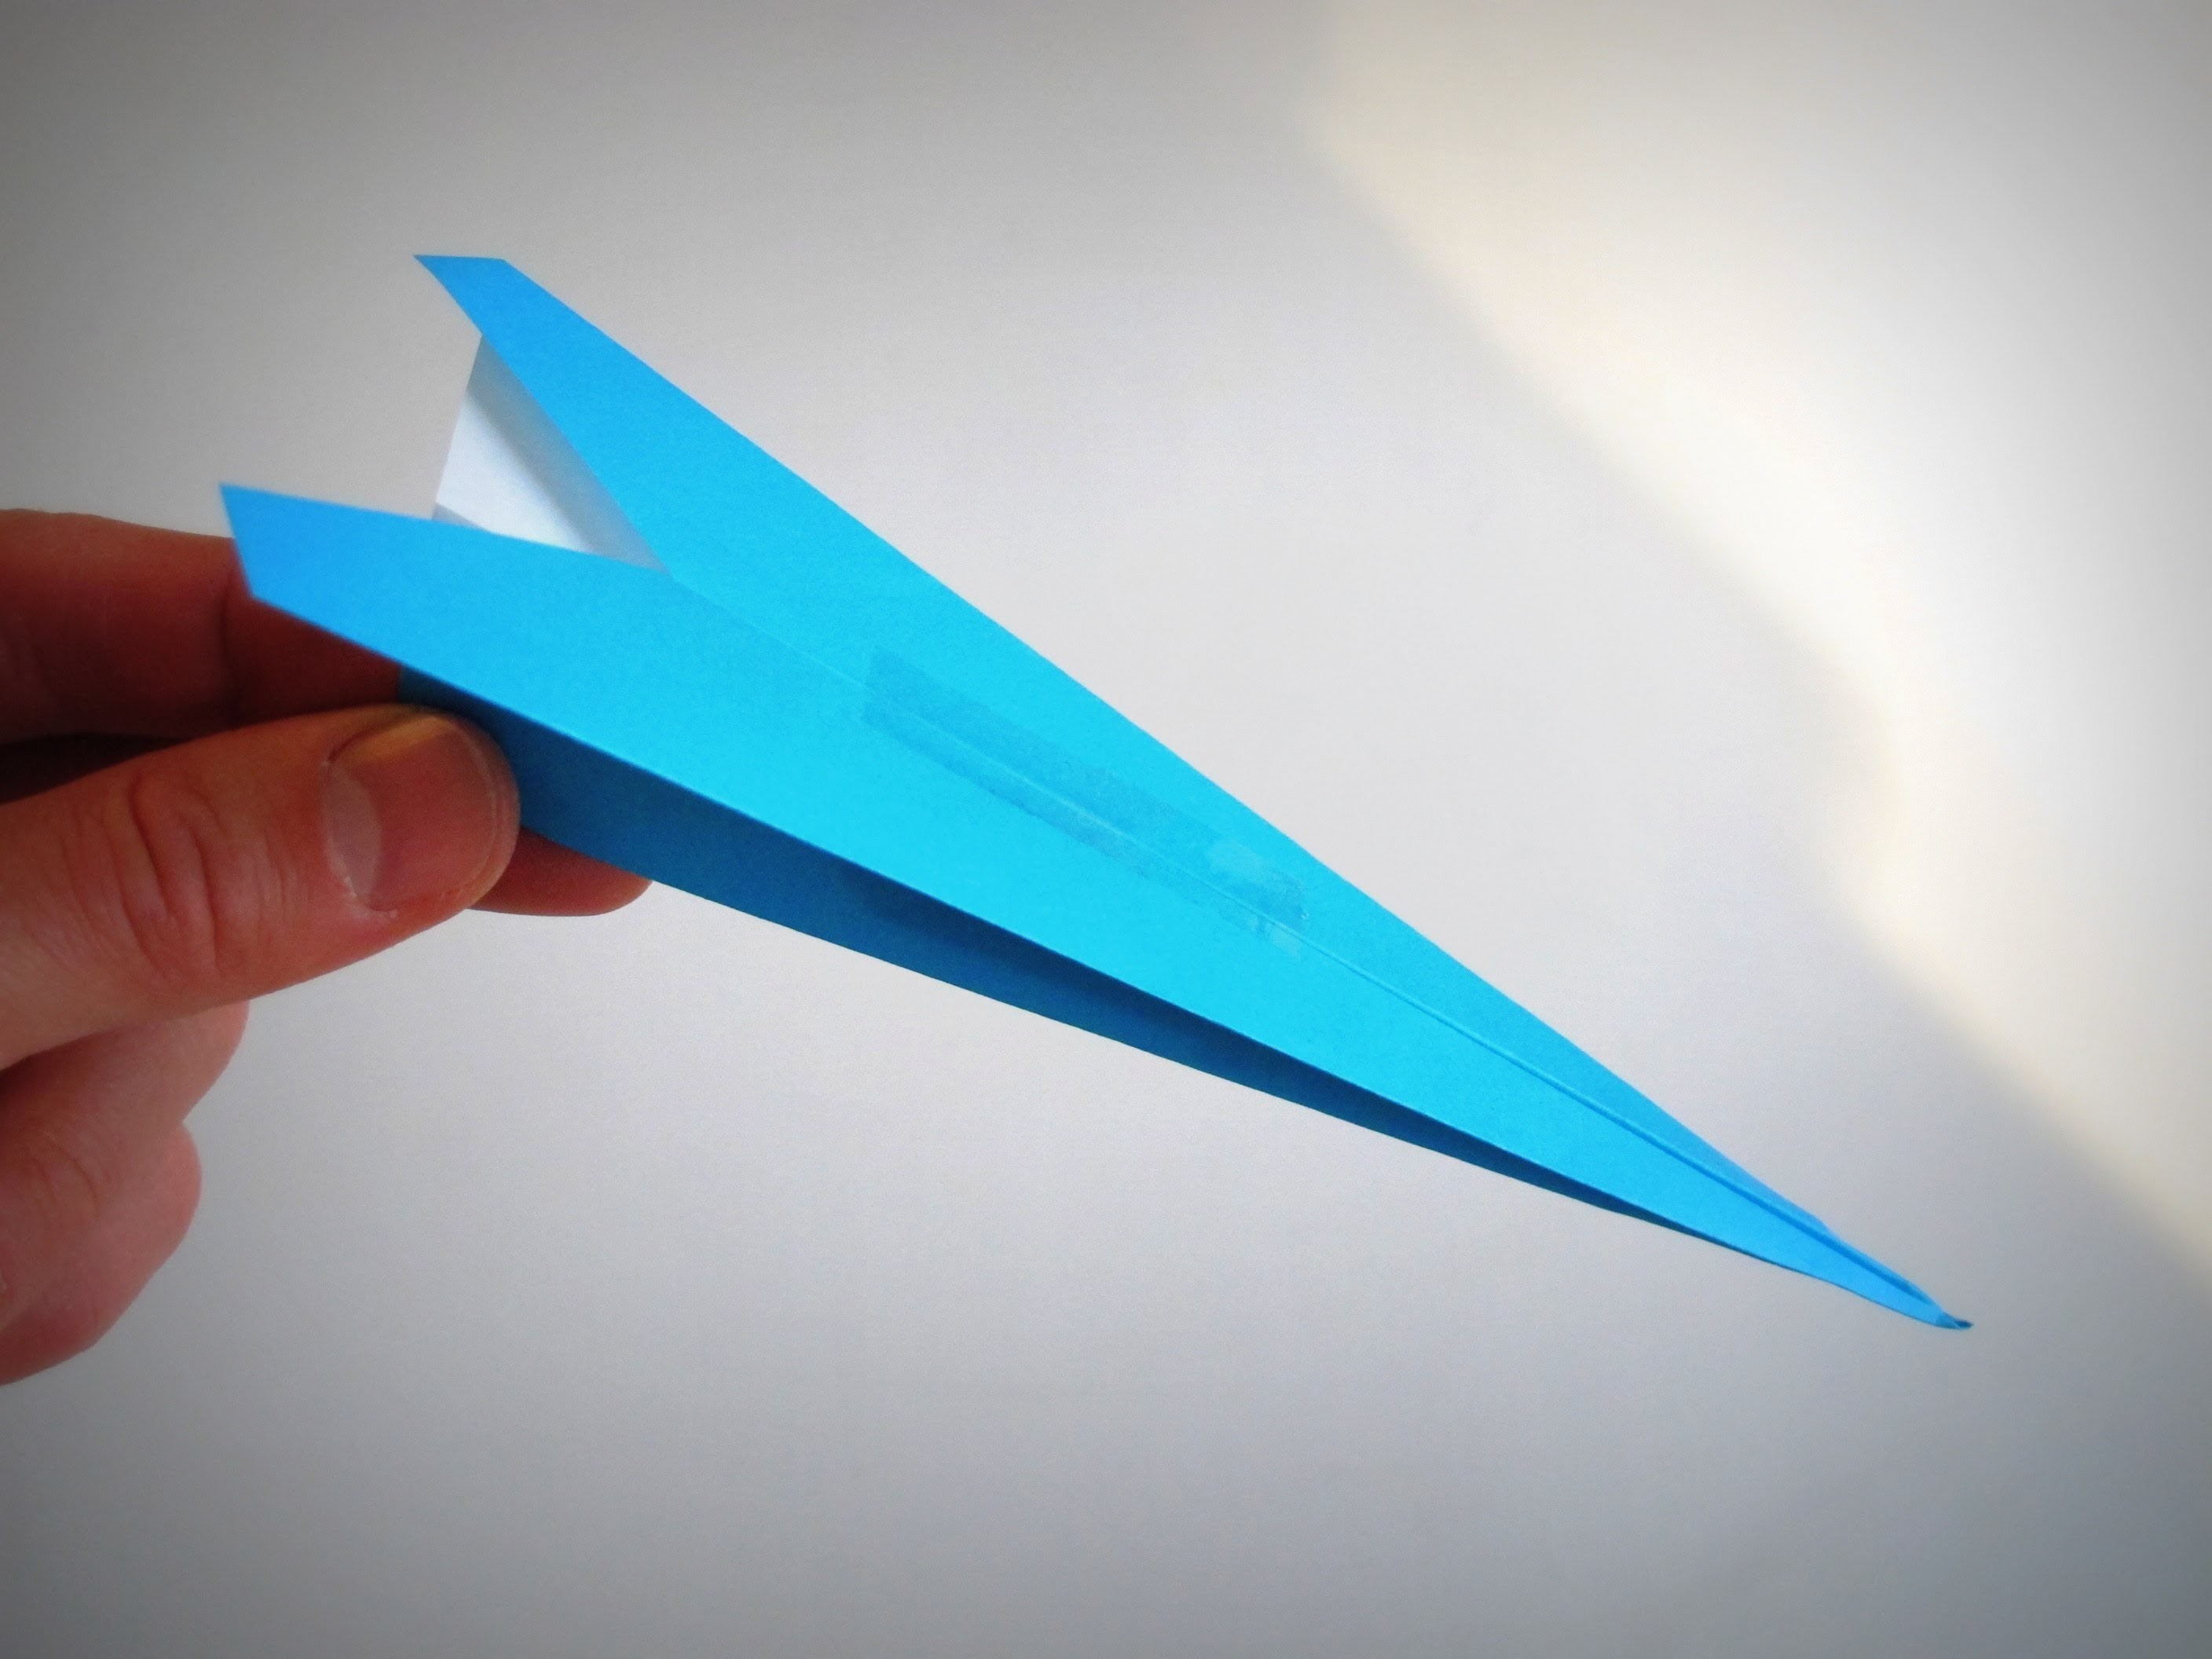 Origami - How to make a Plane